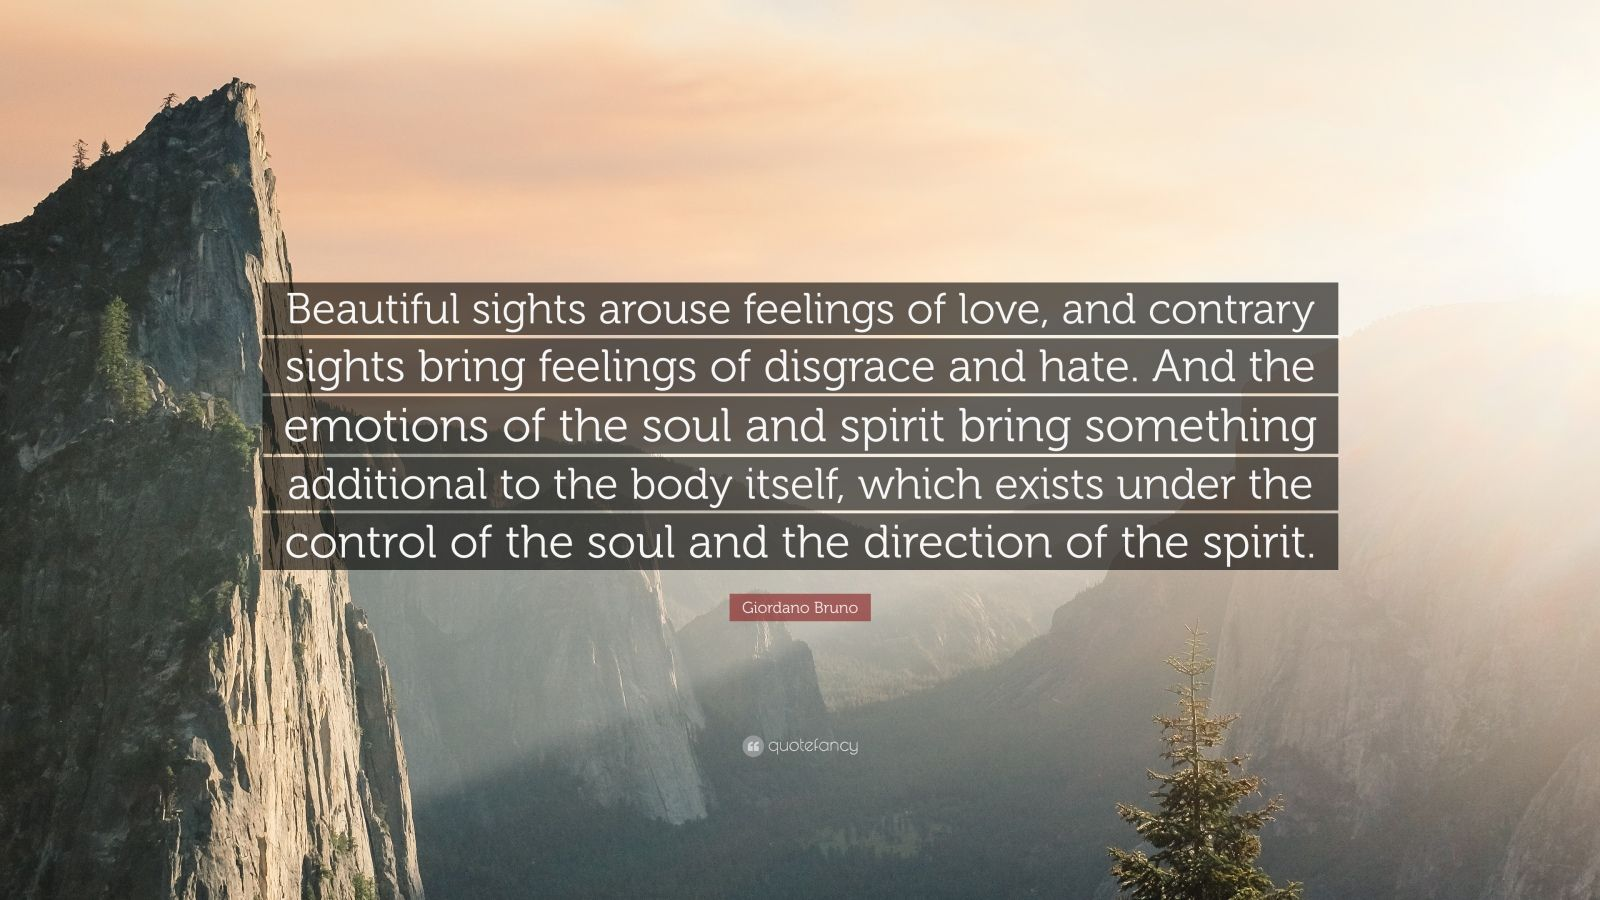 """Giordano Bruno Quote: """"Beautiful sights arouse feelings of love, and contrary sights bring feelings of disgrace and hate. And the emotions of the soul and spirit bring something additional to the body itself, which exists under the control of the soul and the direction of the spirit."""""""